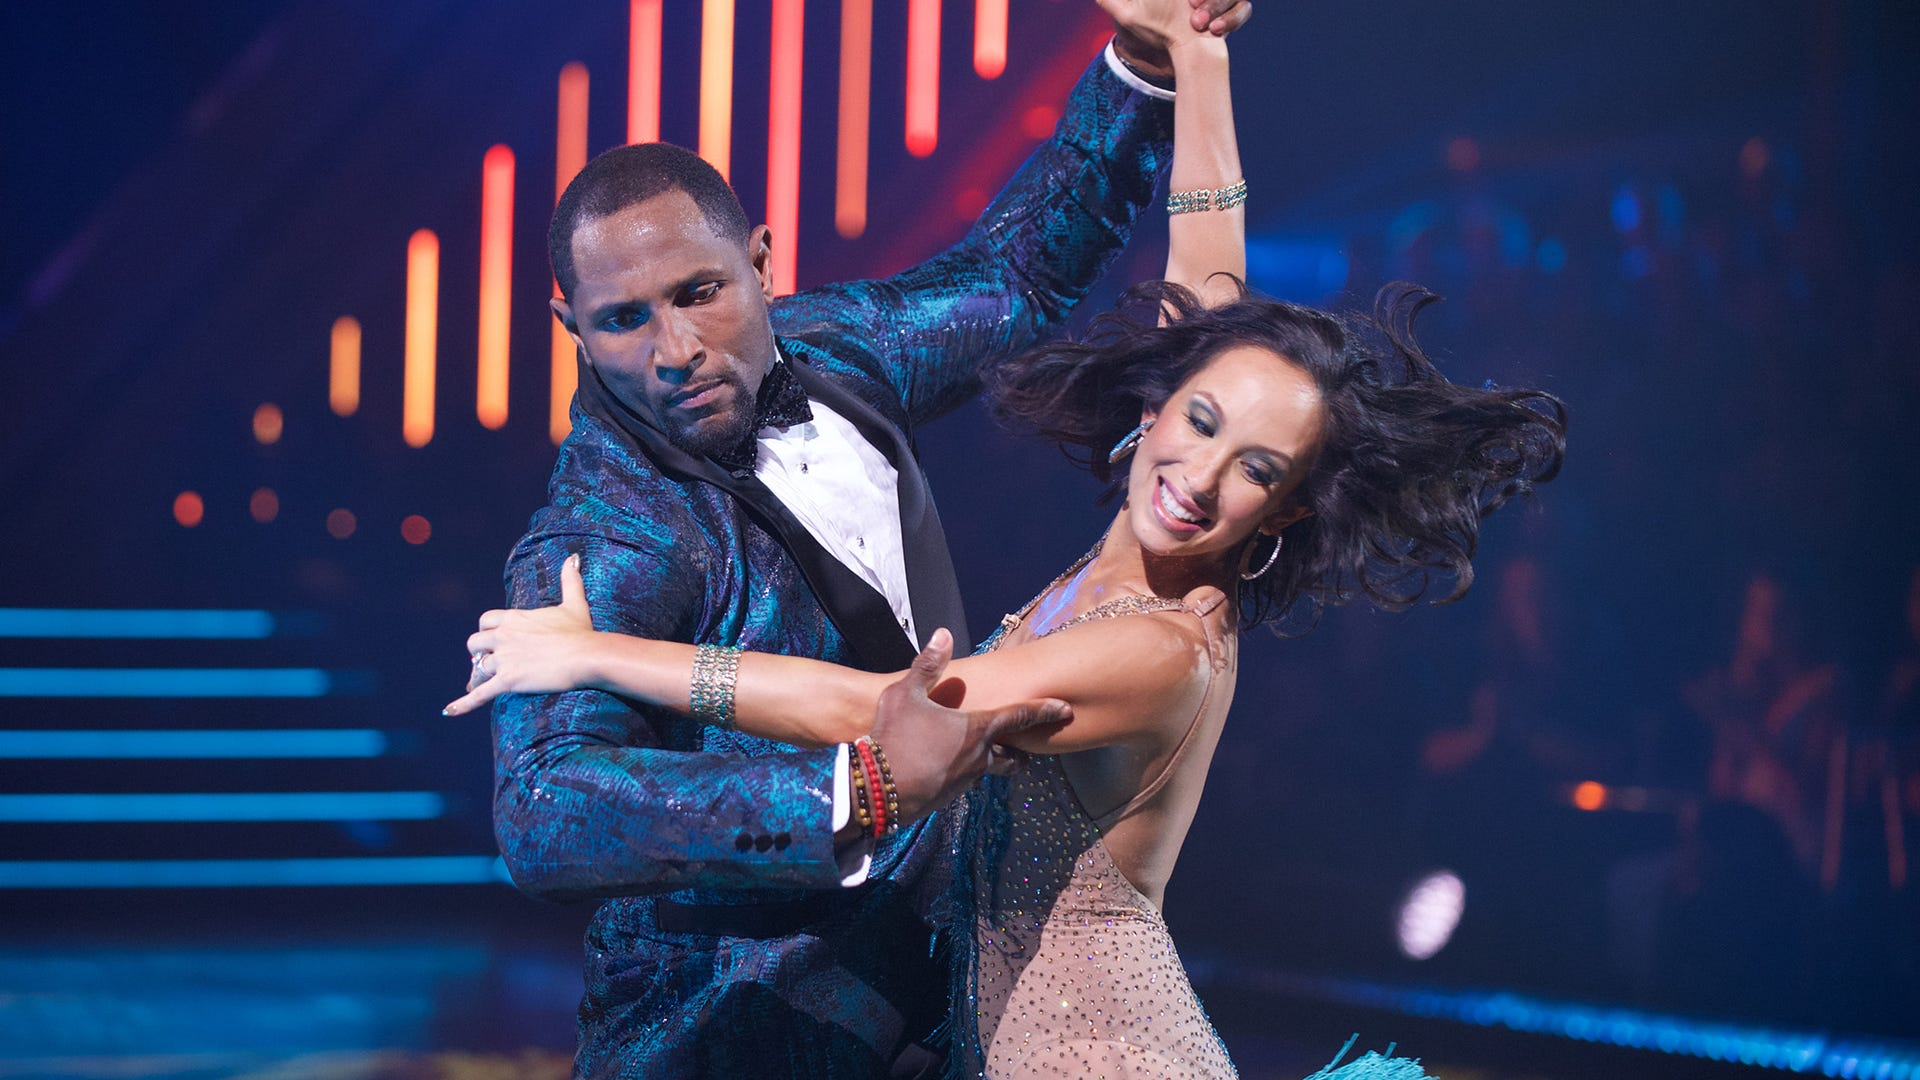 Ray Lewis and Cheryl Burke, Dancing with the Stars